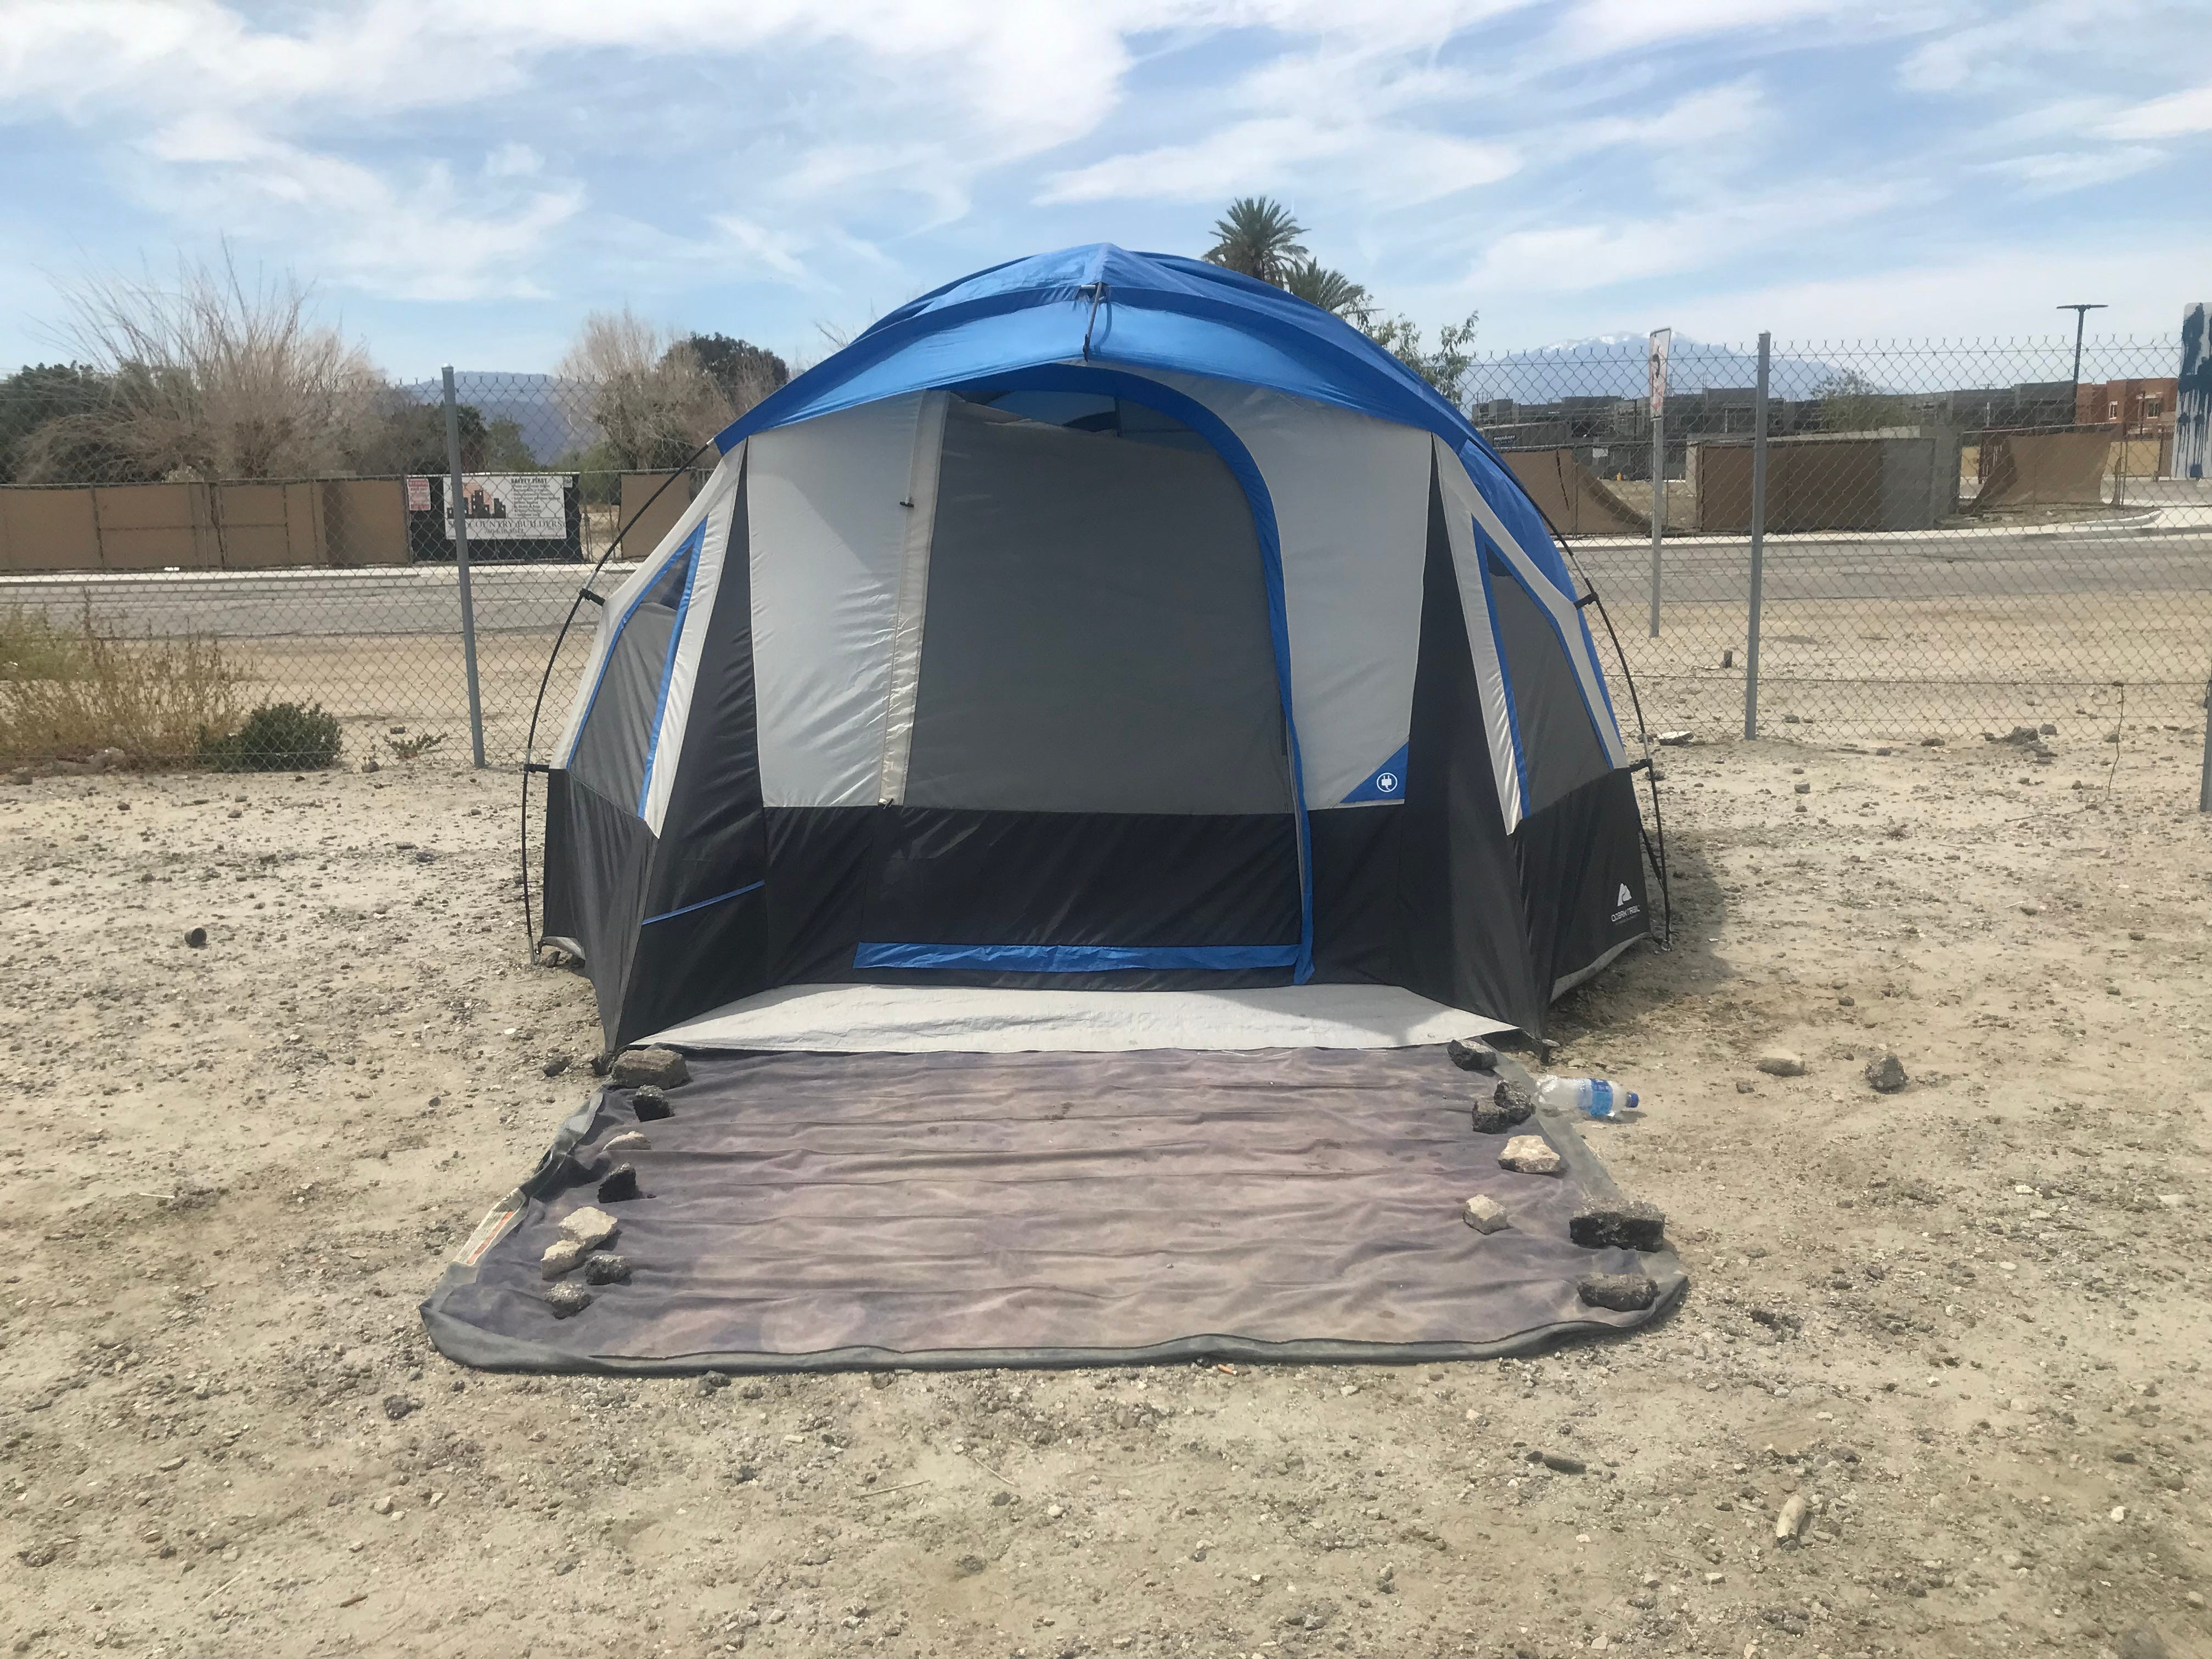 A resident purchased this $98 tent, air mattress and sleeping bag from Wal-Mart this week in hopes to settle into a new home at the One Stop Shoppe encampment.